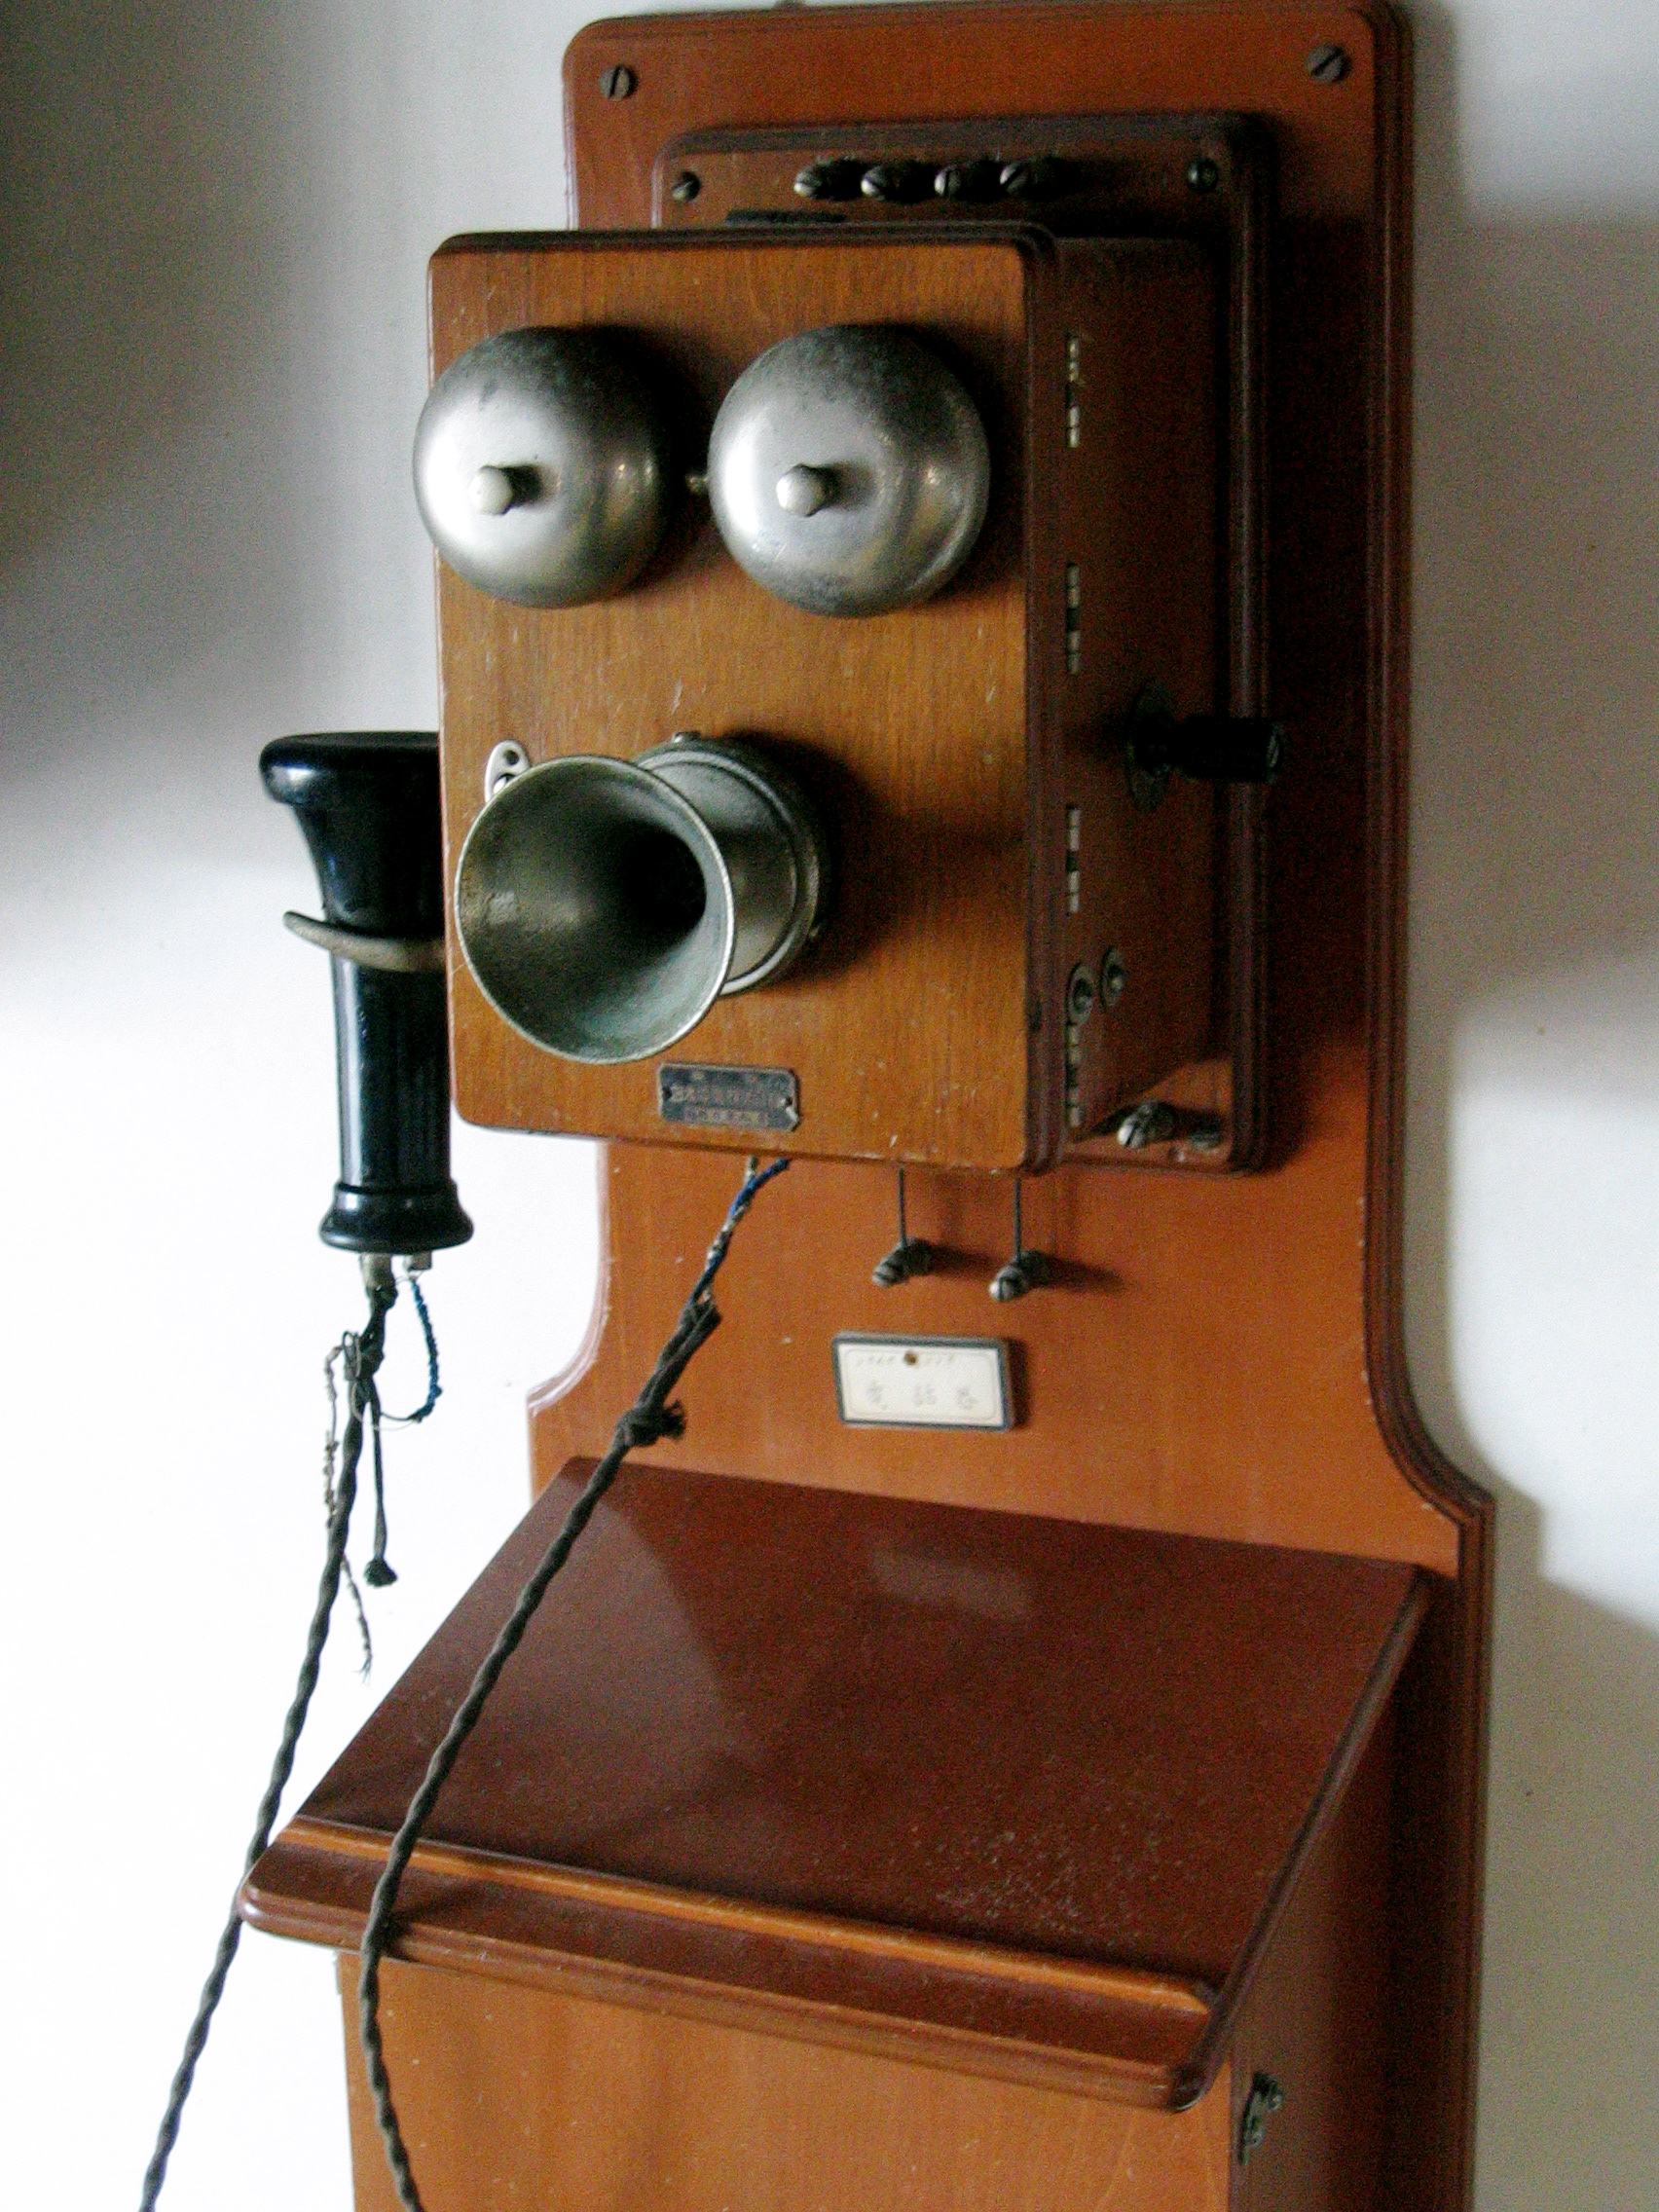 history of telephone 1878 bell demonstrated the telephone to queen victoria on 14 january at osborne house on the isle of wight with calls to london, cowes and southampton.